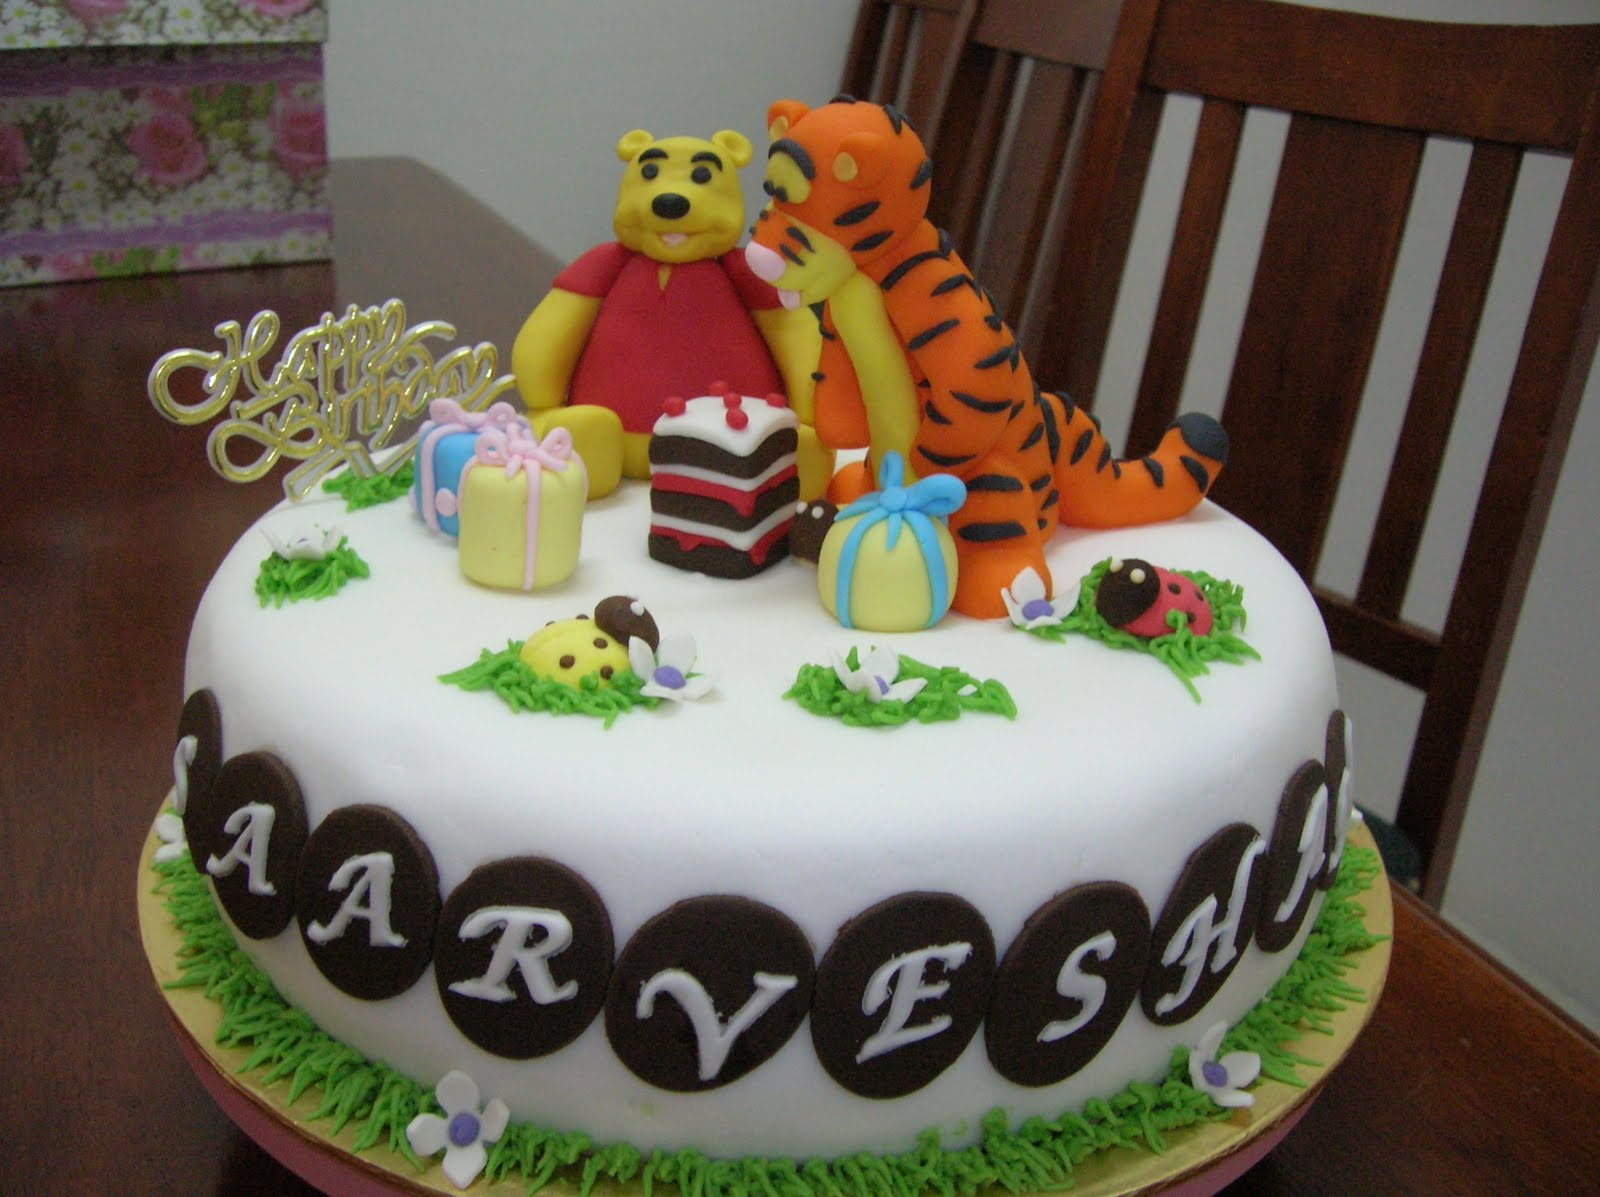 Saarveshans 3rd Year Birthday Cake Chocolate Mud With Ganache And Butter Icing Covered Fondant